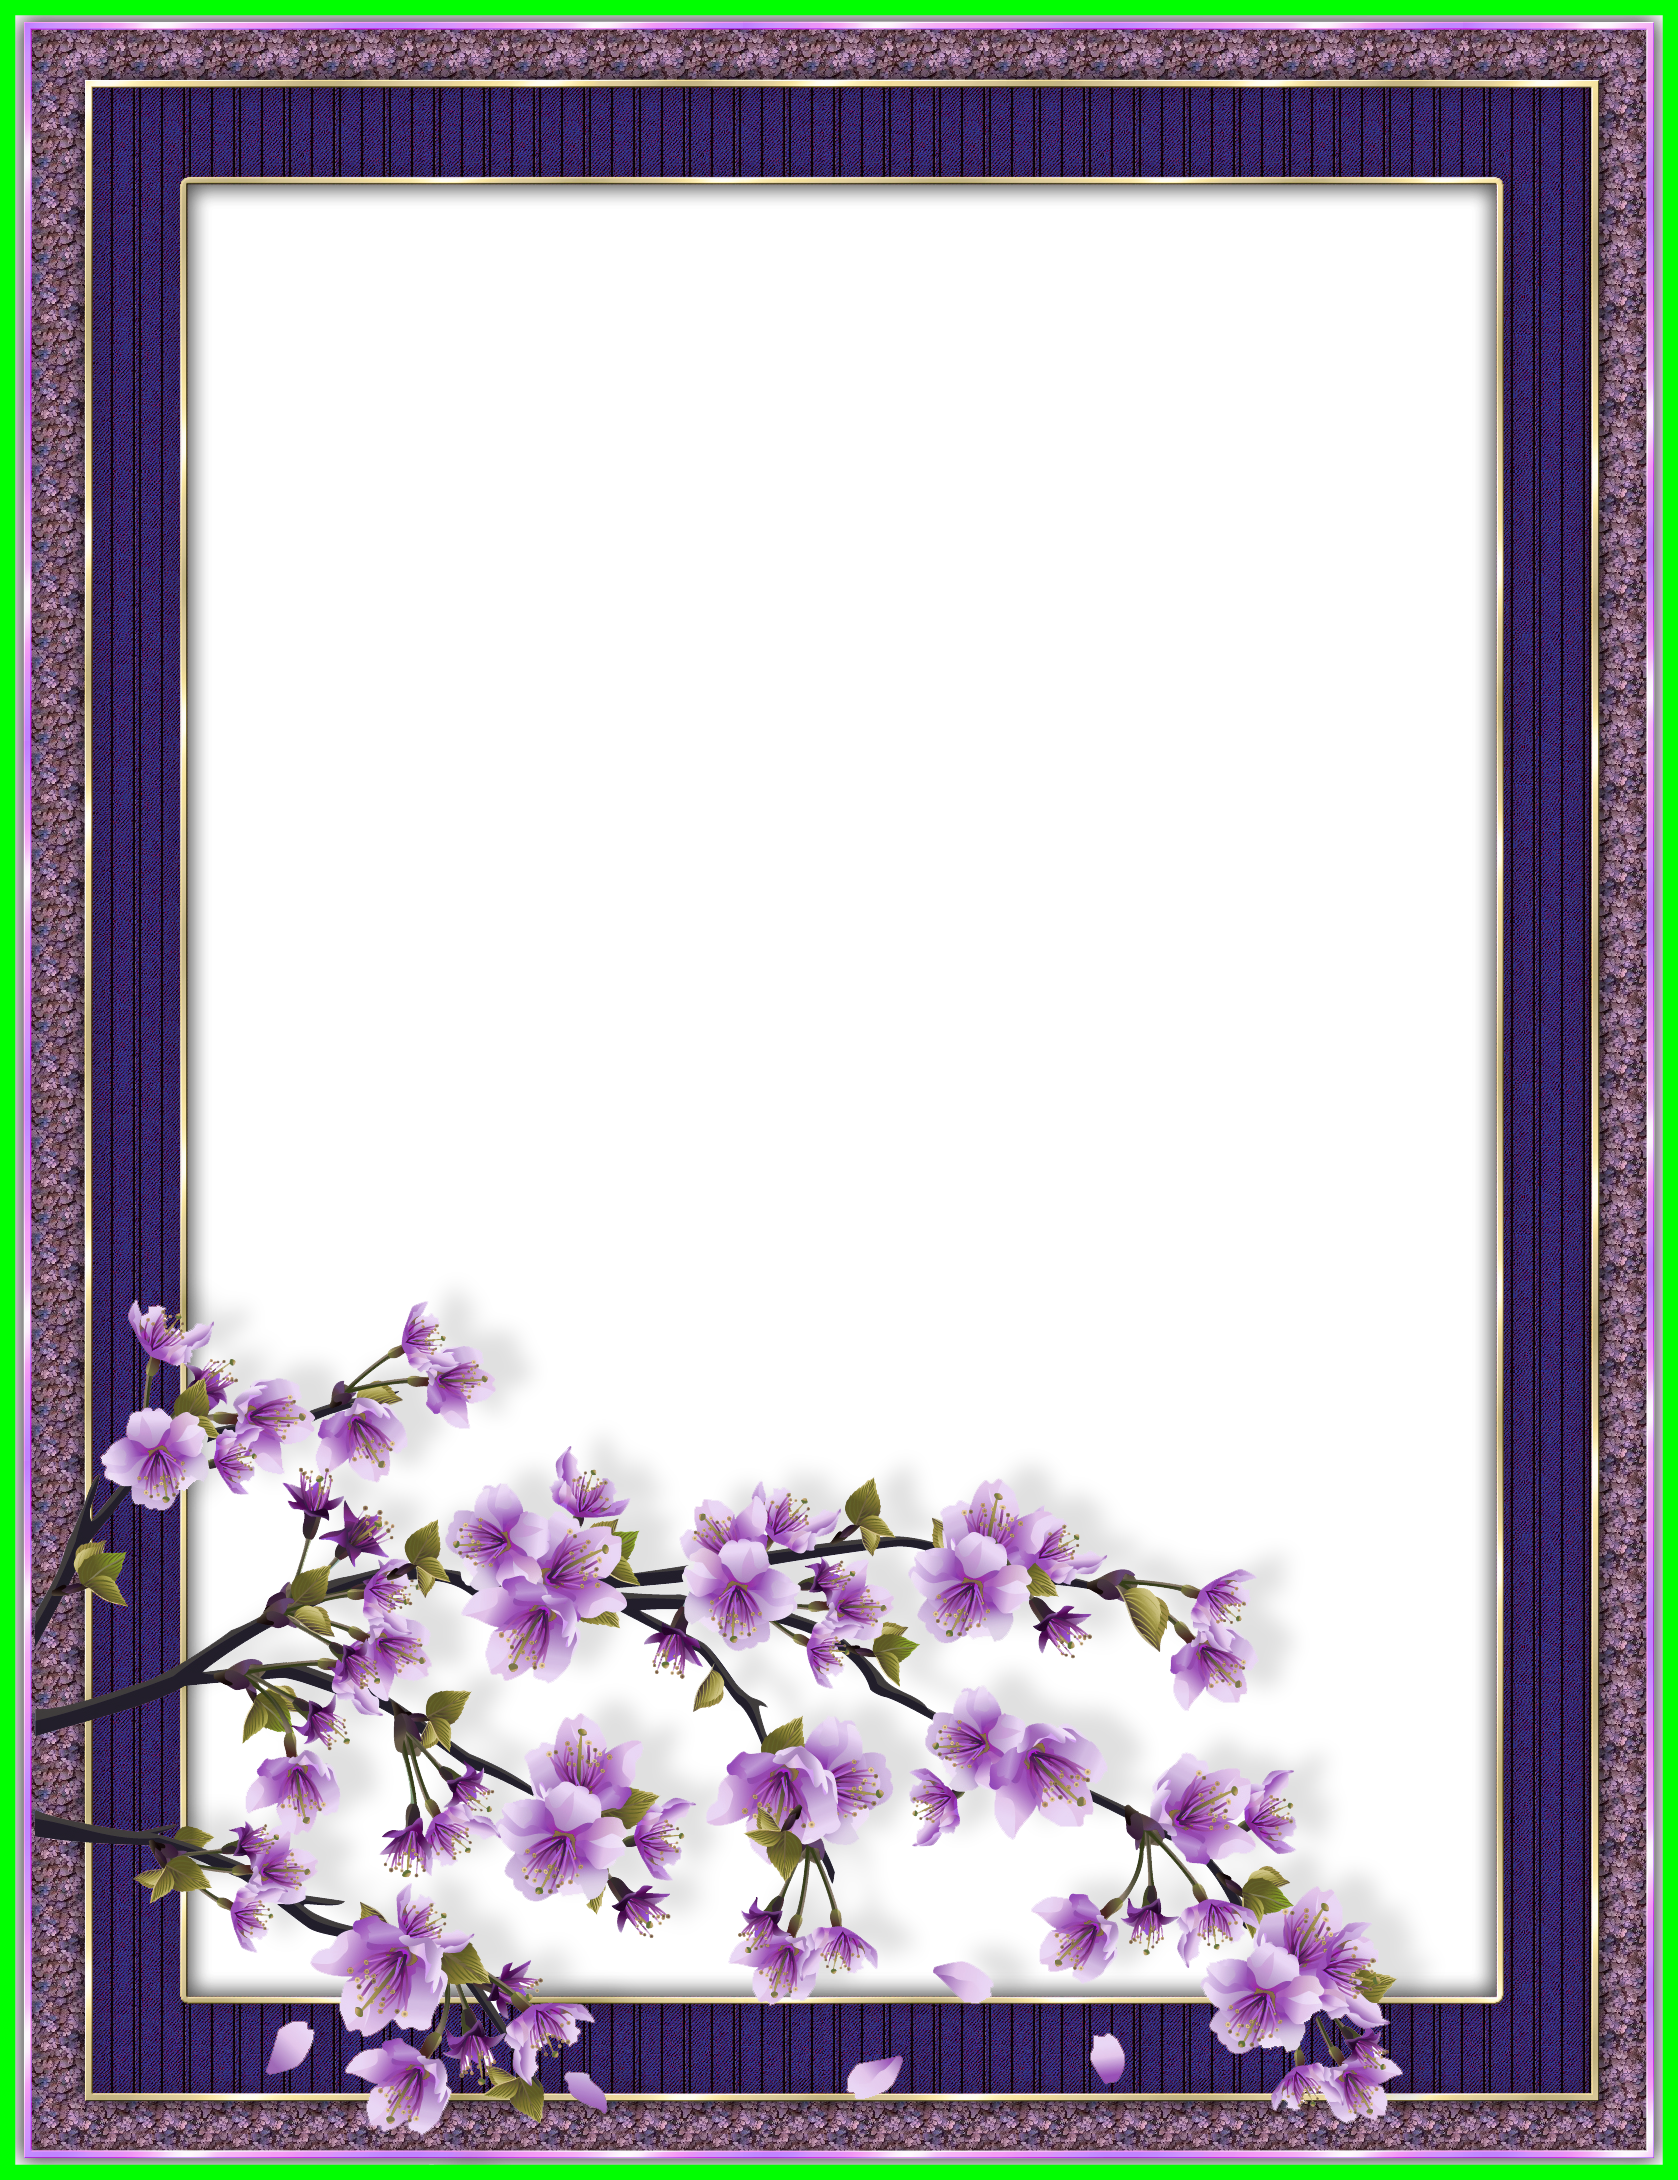 Best purple transparent flower. Lavender clipart frame